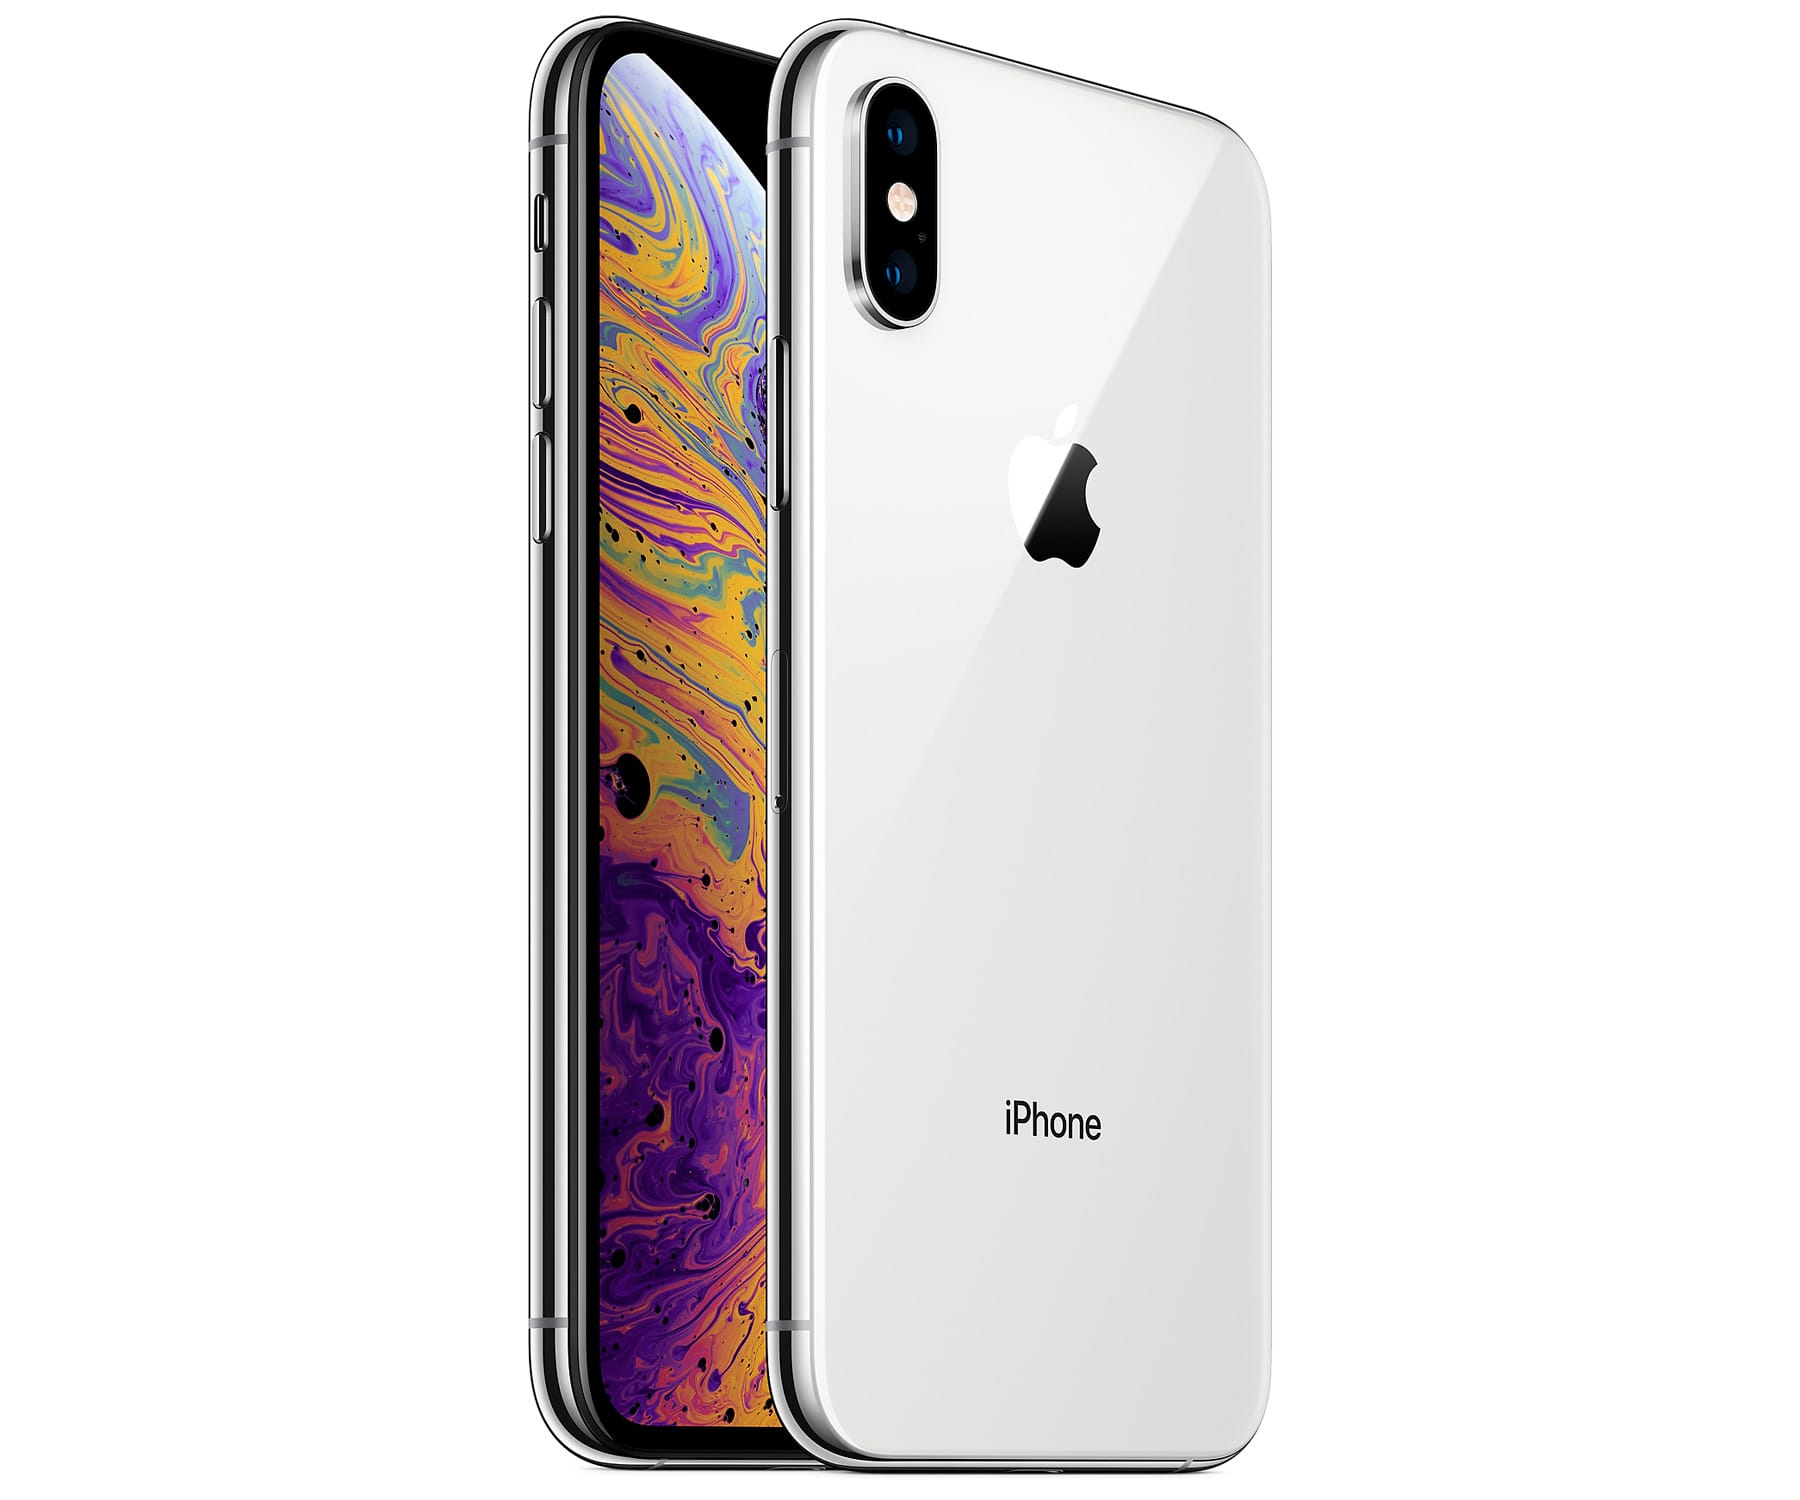 APPLE IPHONE XS 64GB SILVER REACONDICIONADO CPO MÓVIL 4G 5.8'' SUPER RETINA HD OLED HDR/6CORE/64GB/4GB RAM/12MP+12MP/7MP